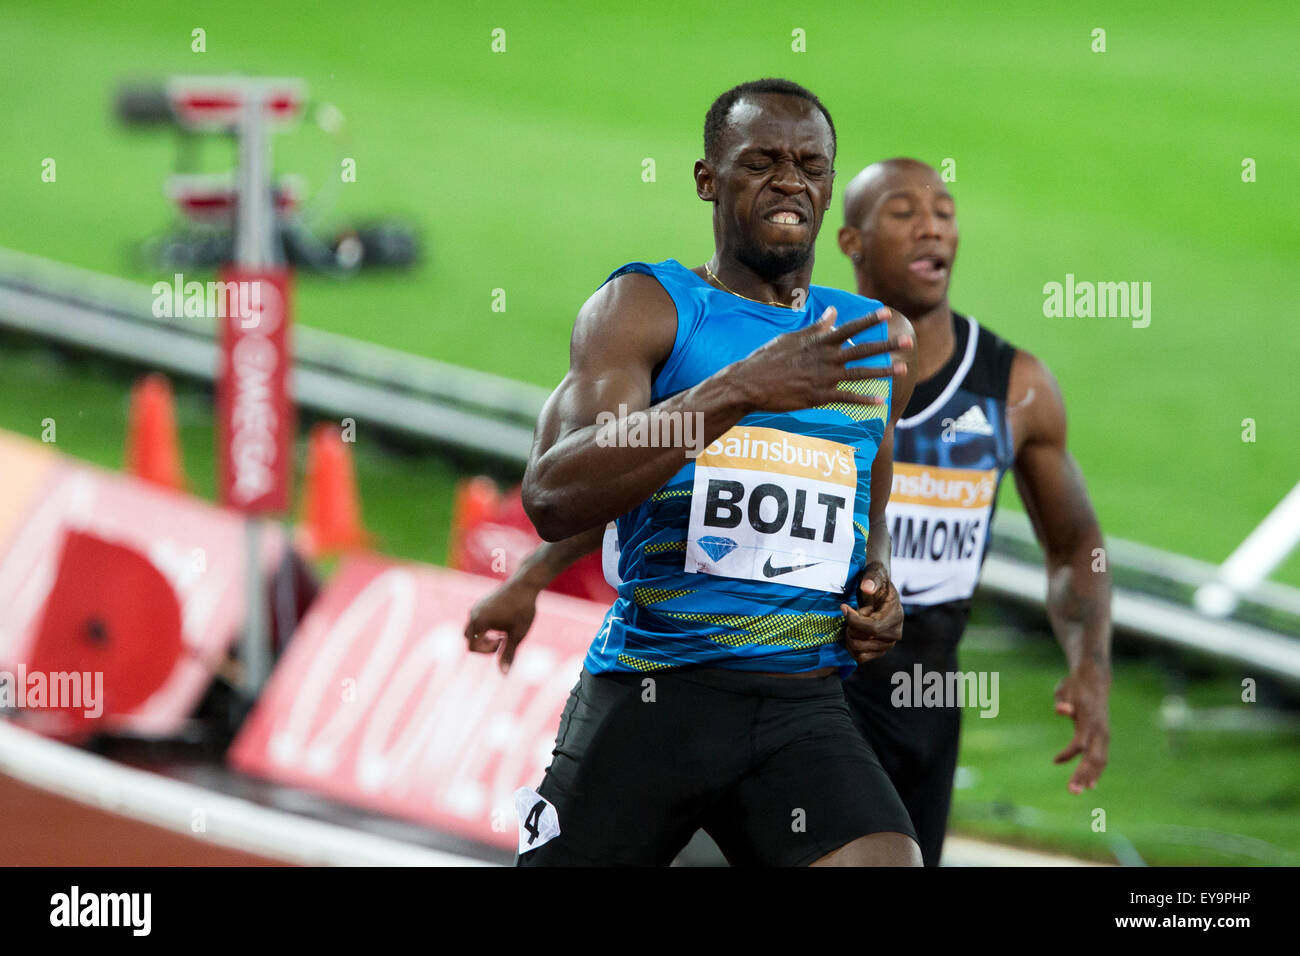 Londres, Royaume-Uni. 24 juillet, 2015. Usain Bolt, le 100 m final, Diamond League jeux anniversaire Sainsbury's, Photo Stock